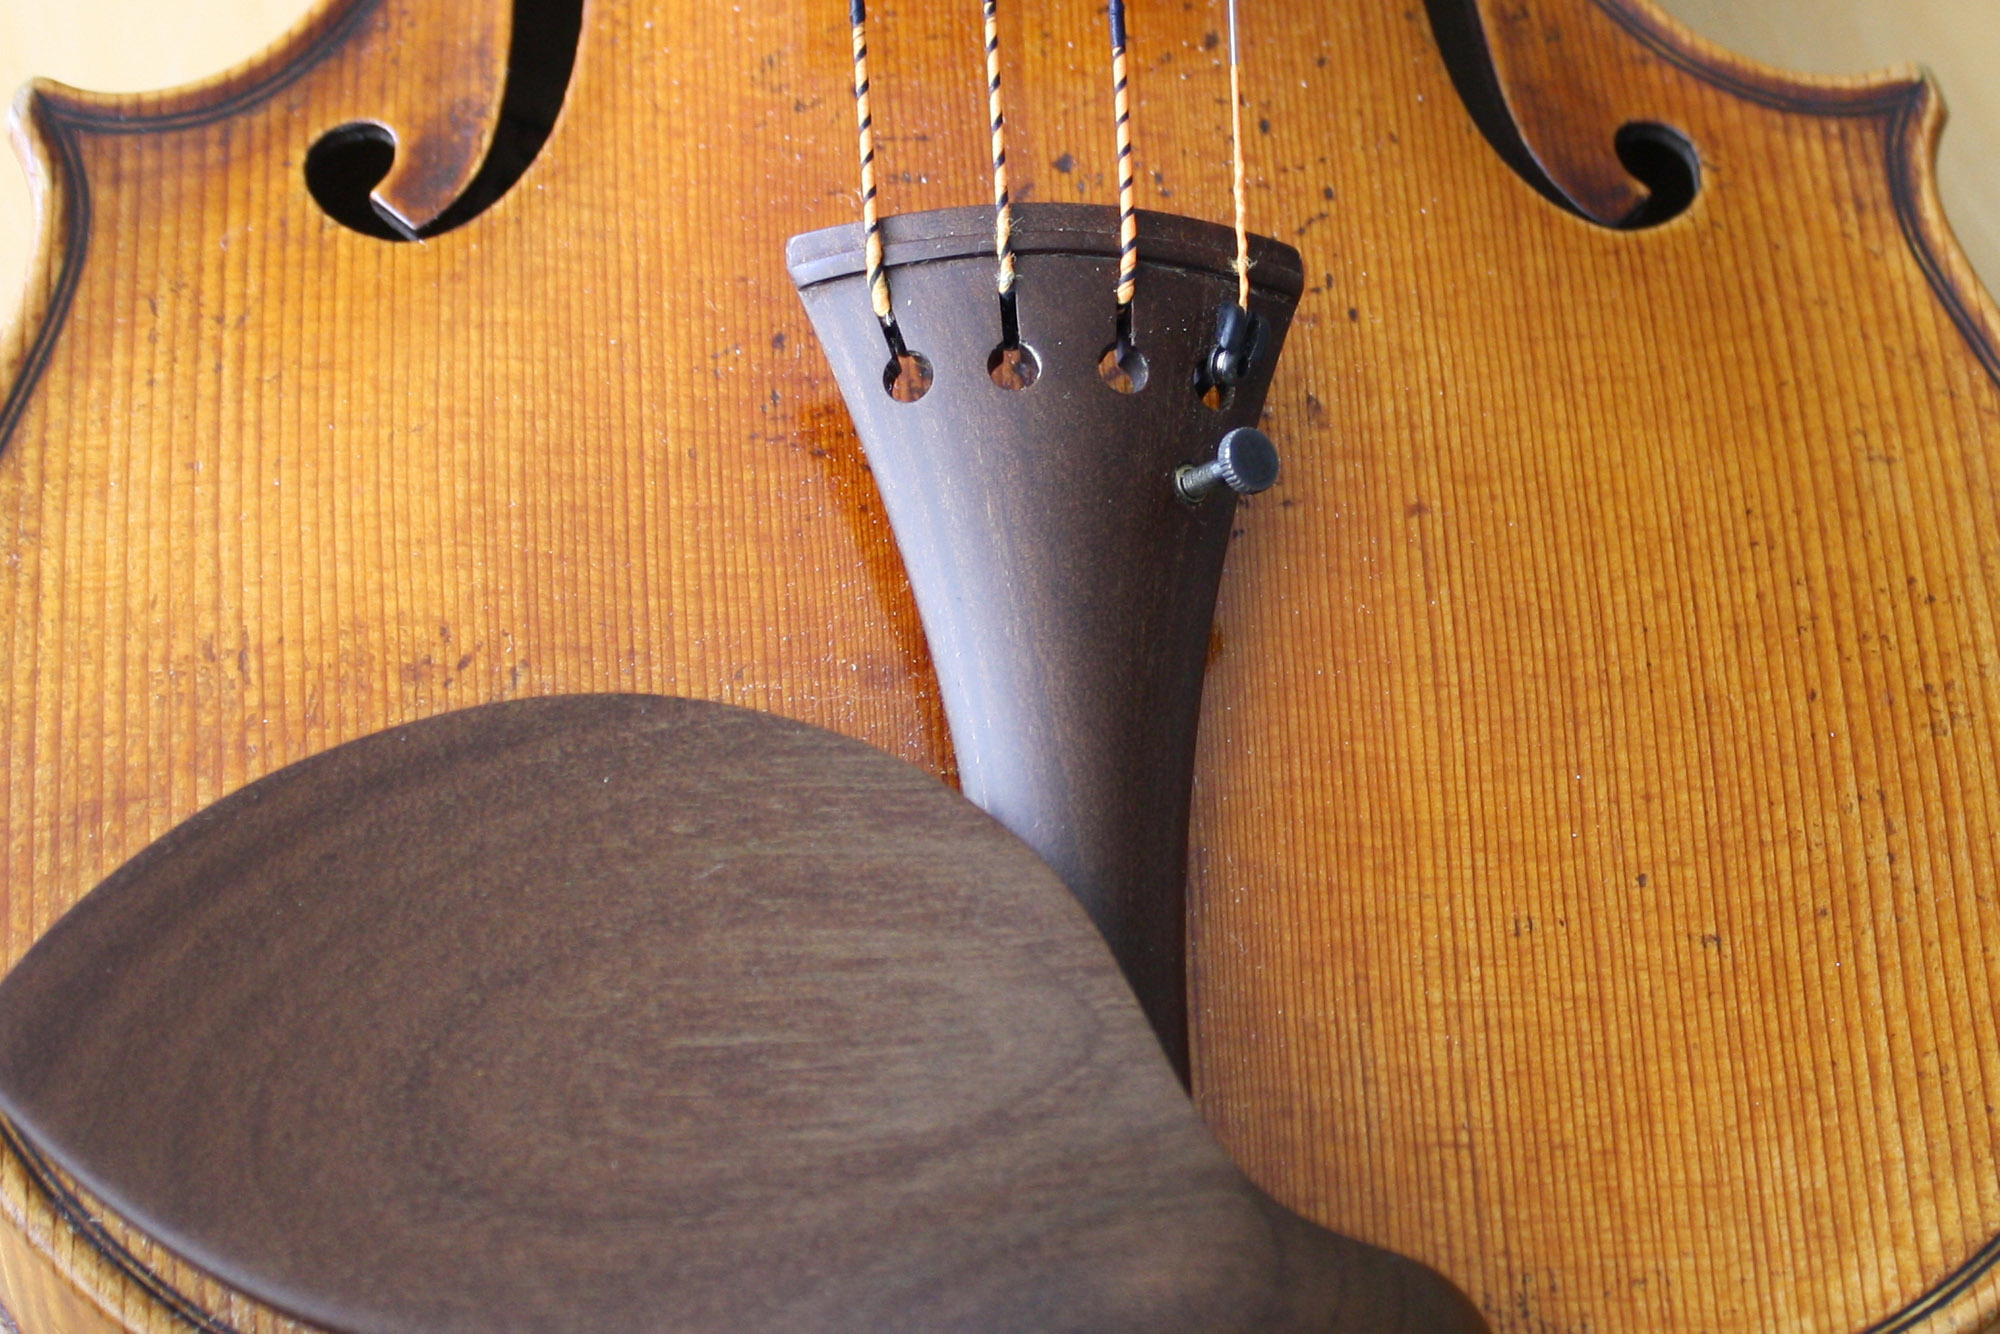 Tailpiece and chinrest from Sonowood maple made by Wilhelm Geigenbau